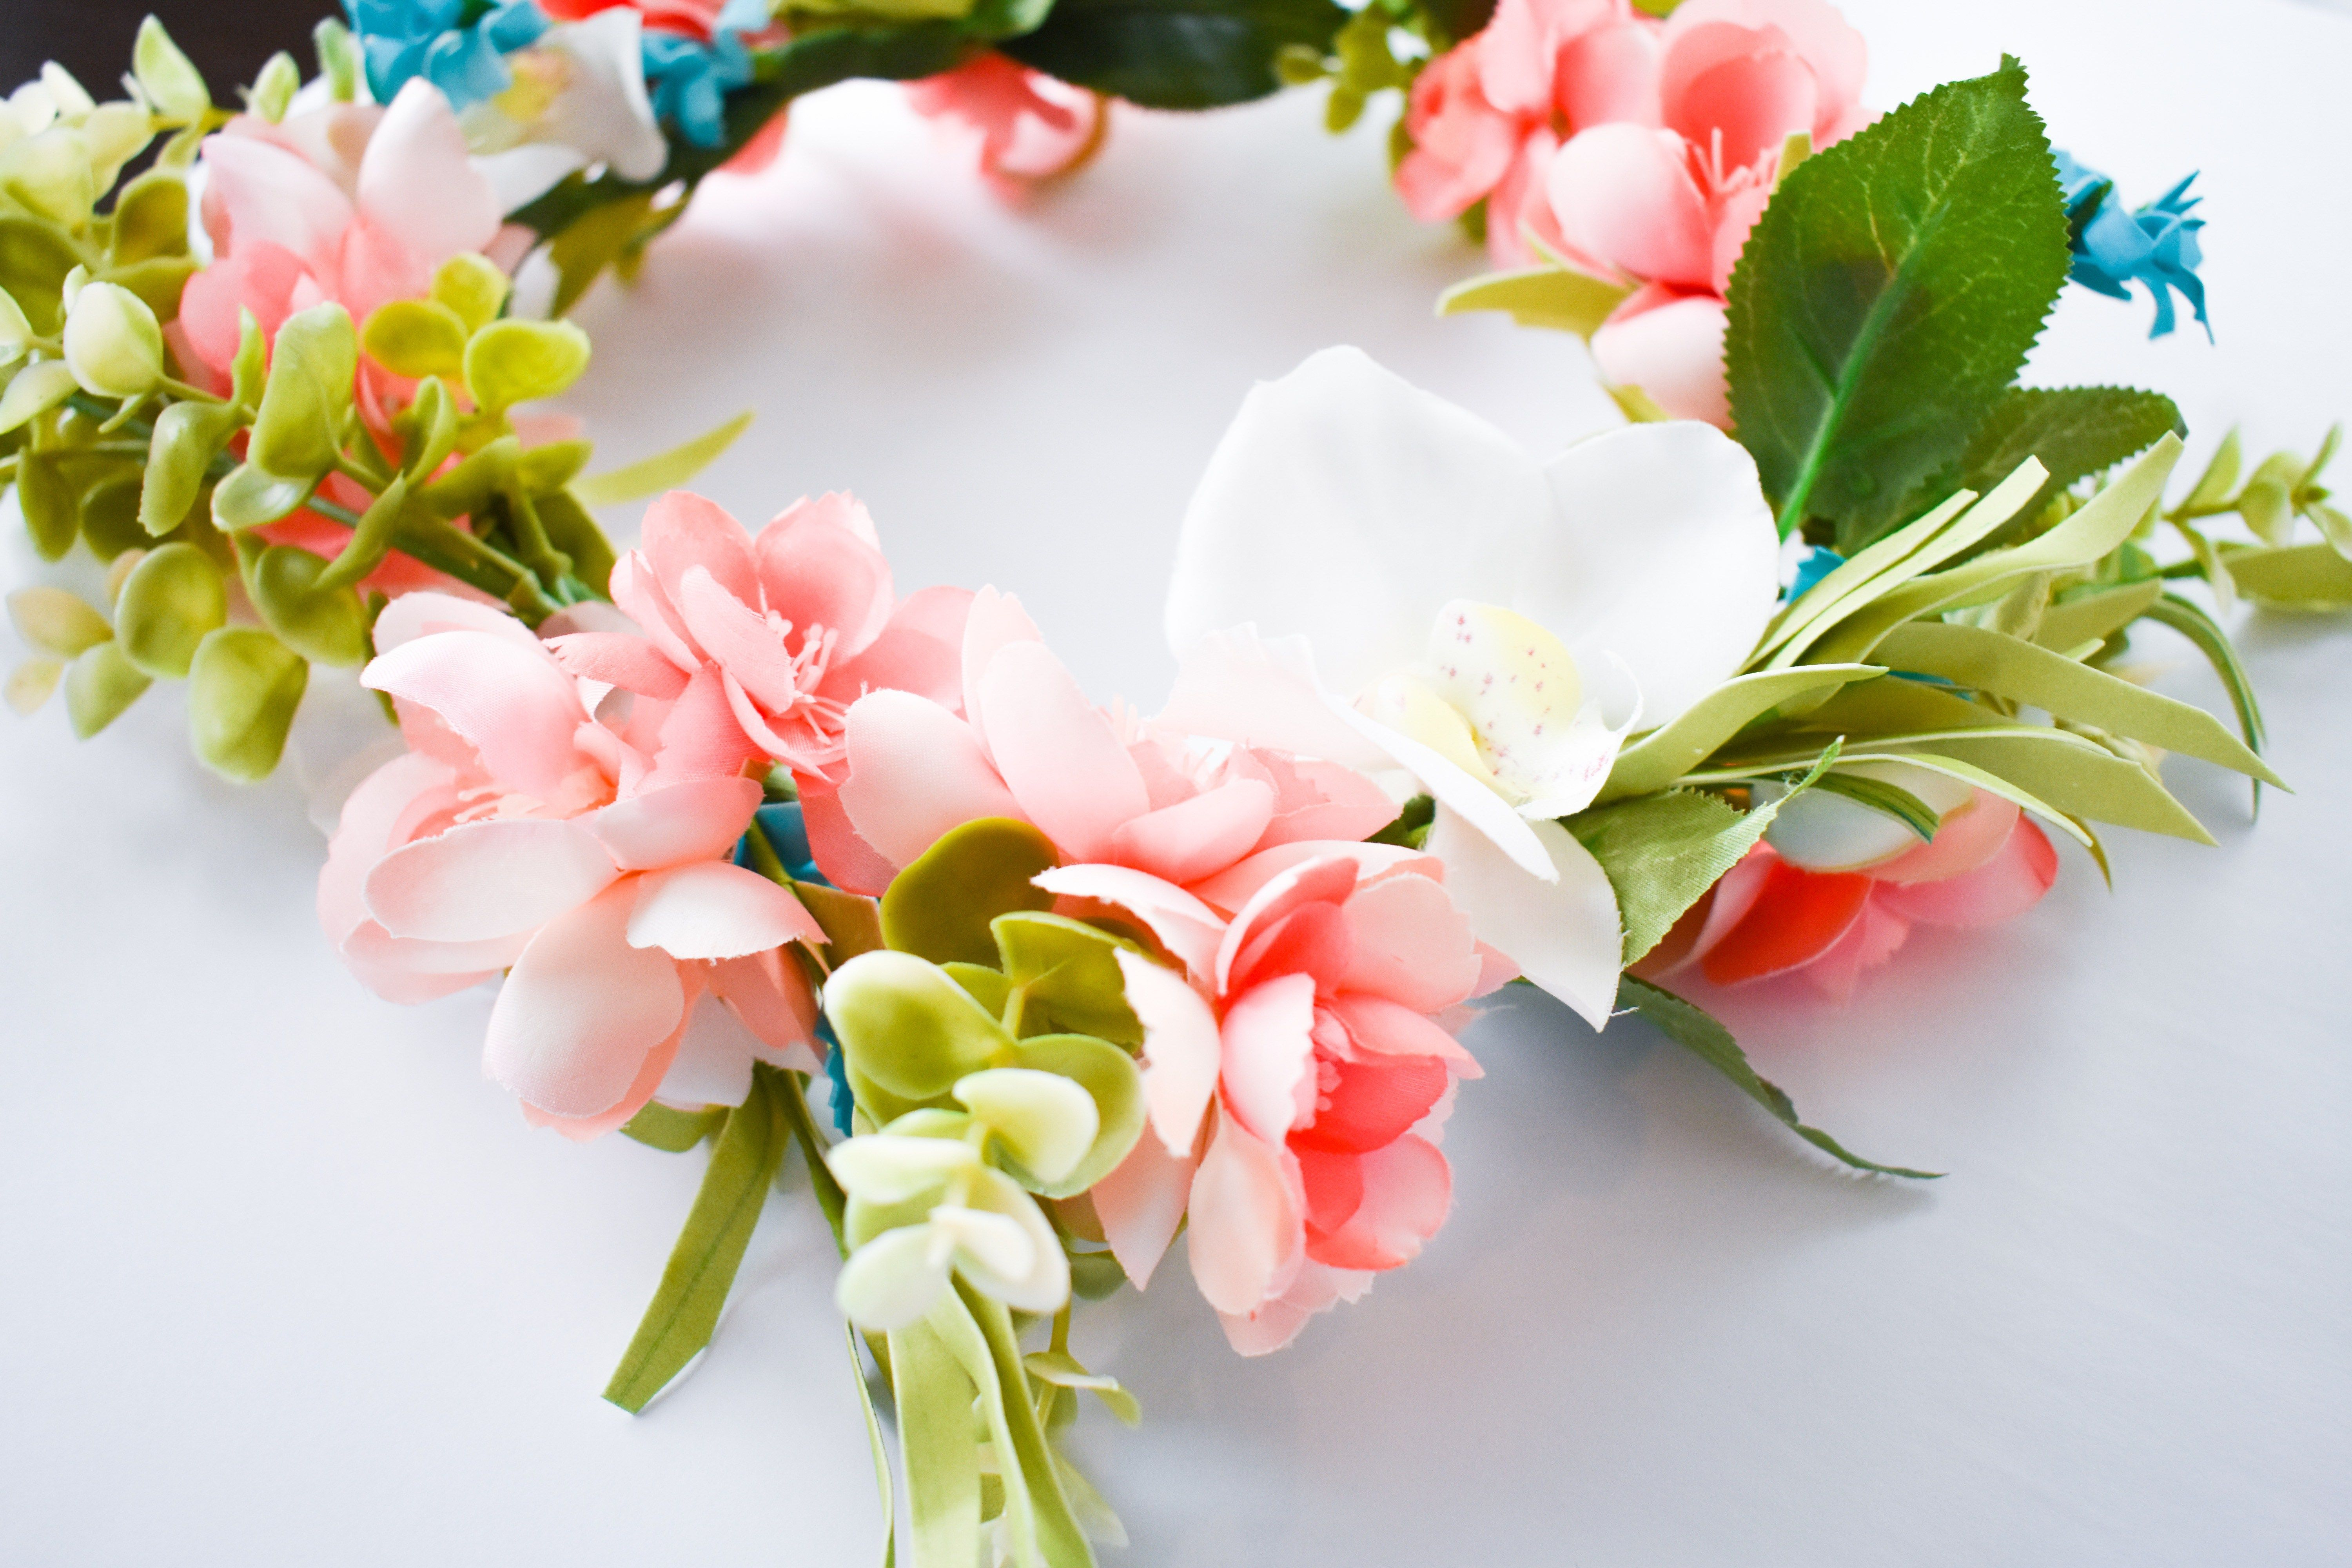 How to make a flower crown with fake flowers easy diy tutorial how to make a flower crown with fake flowers izmirmasajfo